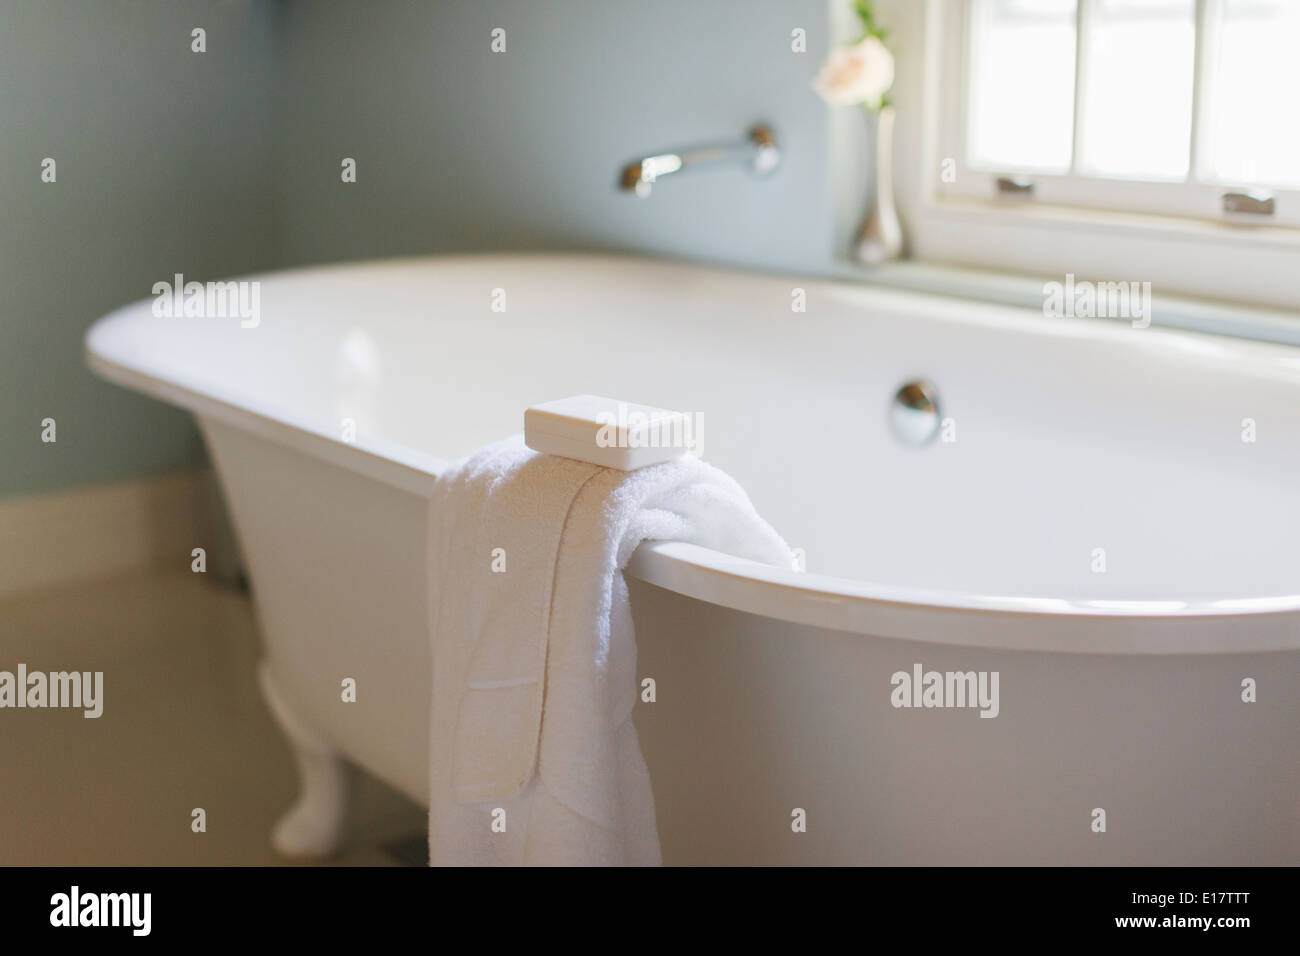 Bar soap and towel on ledge of claw foot tub - Stock Image